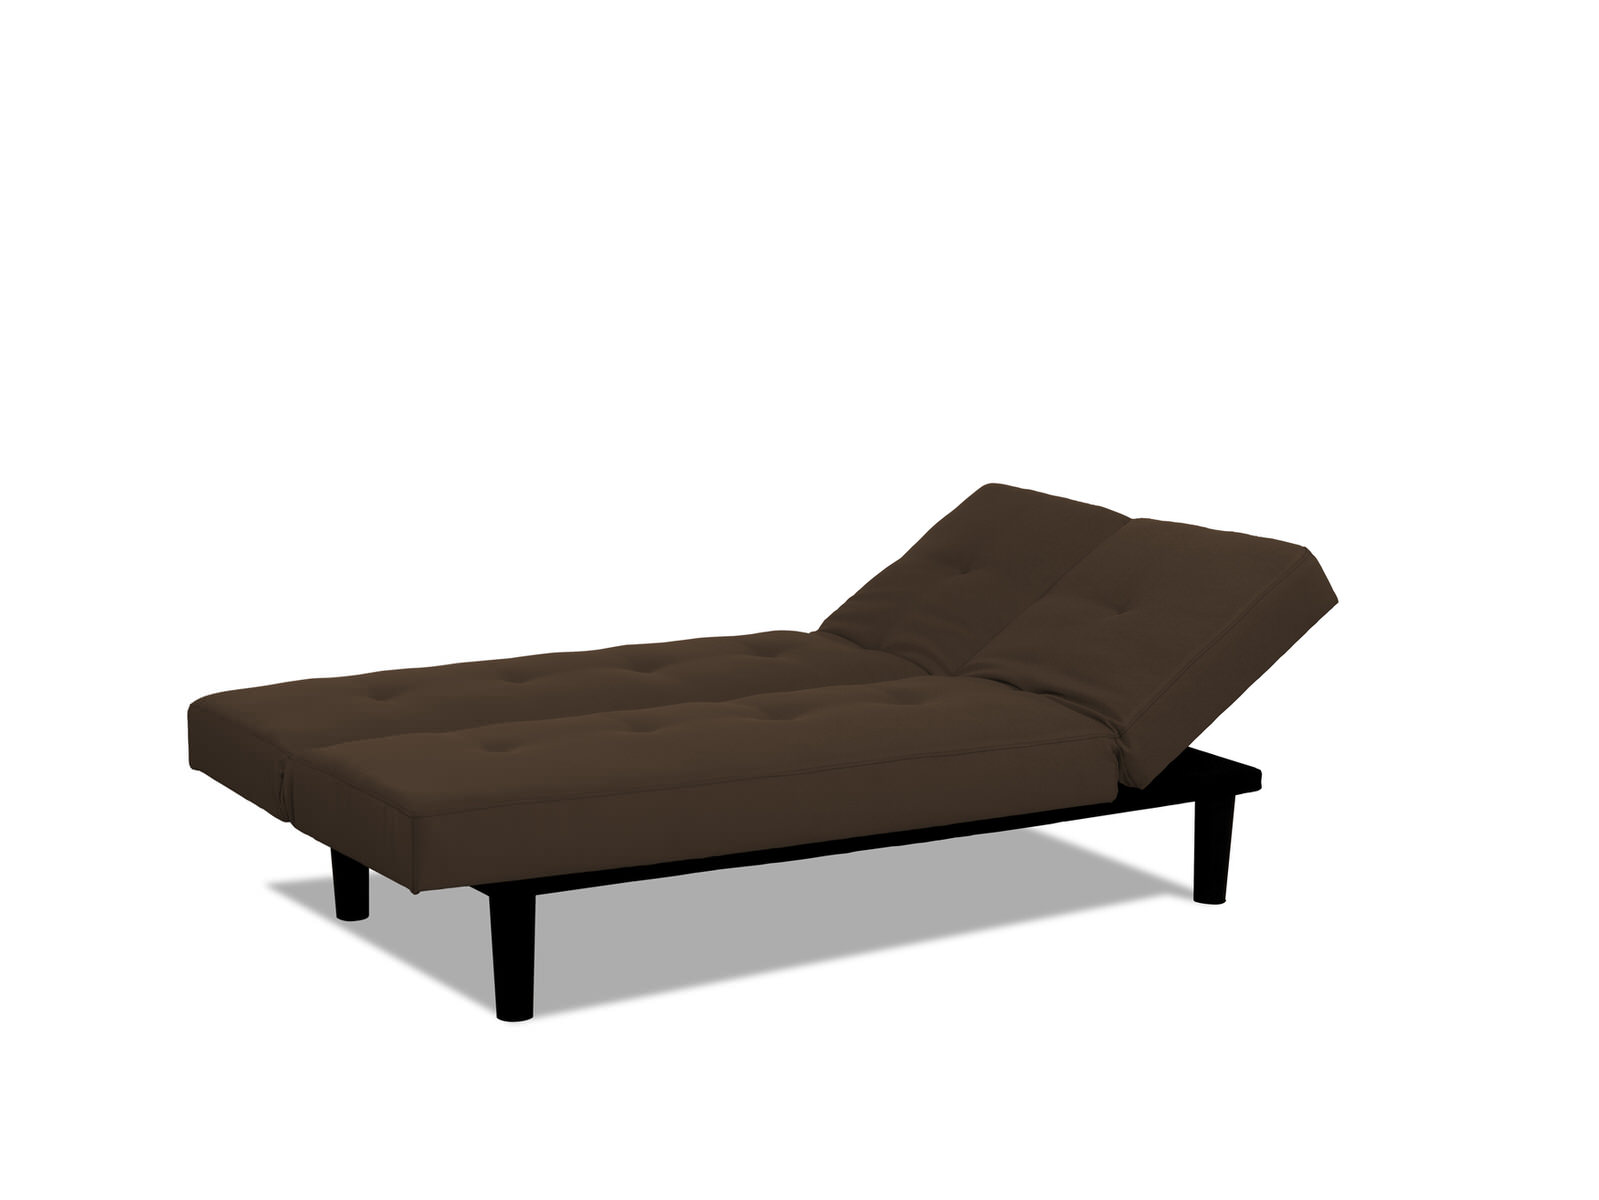 bed loungers 28 images euro lounger sofa bed la musee com folding sun lounger lightweight. Black Bedroom Furniture Sets. Home Design Ideas